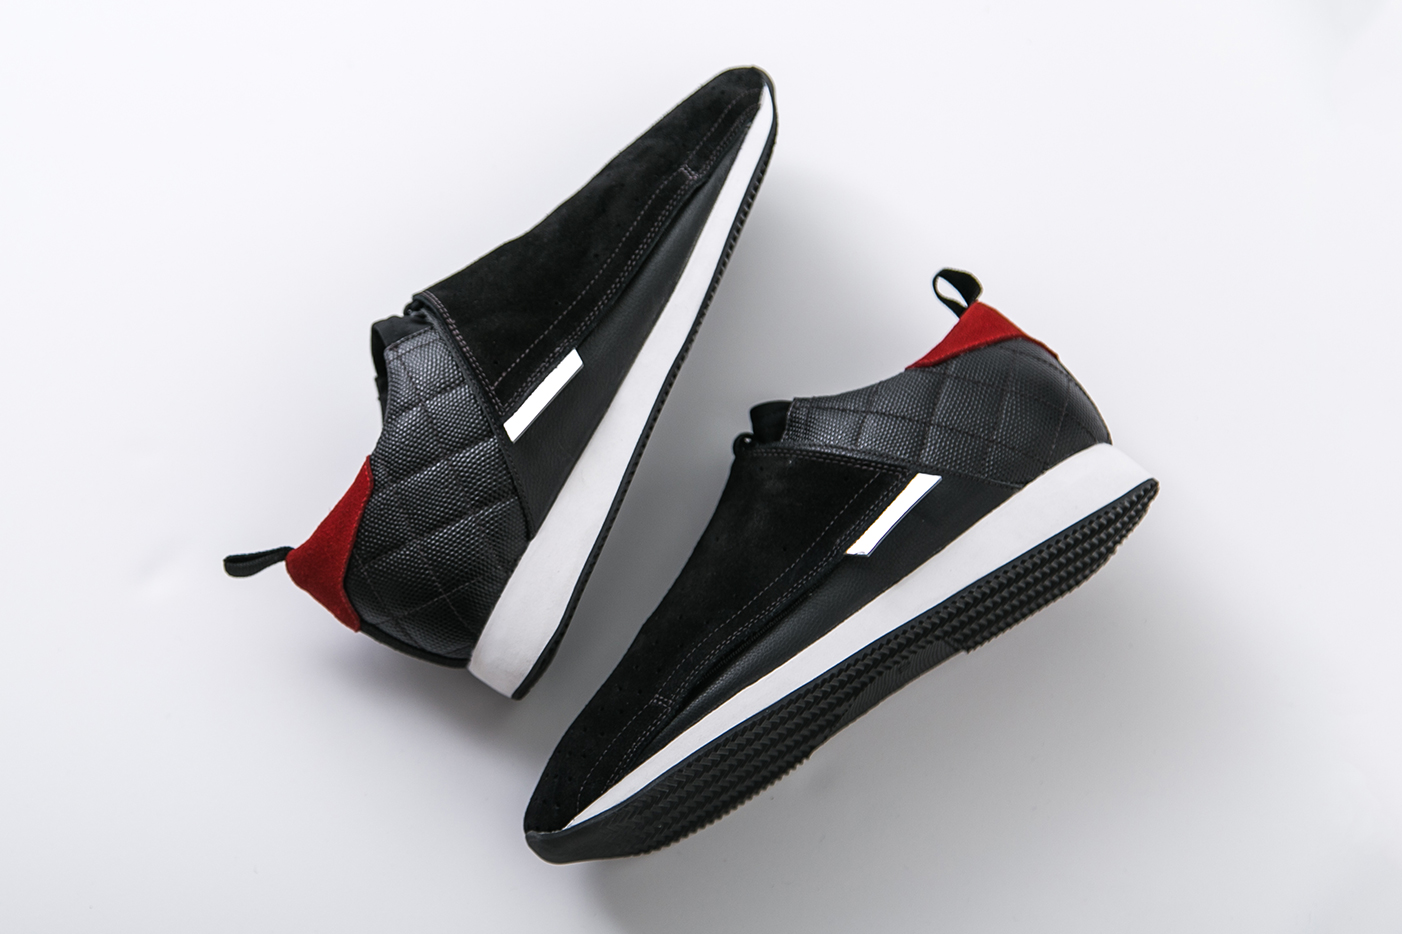 Honda Designs a Driving Shoe Inspired by the Honda Civic